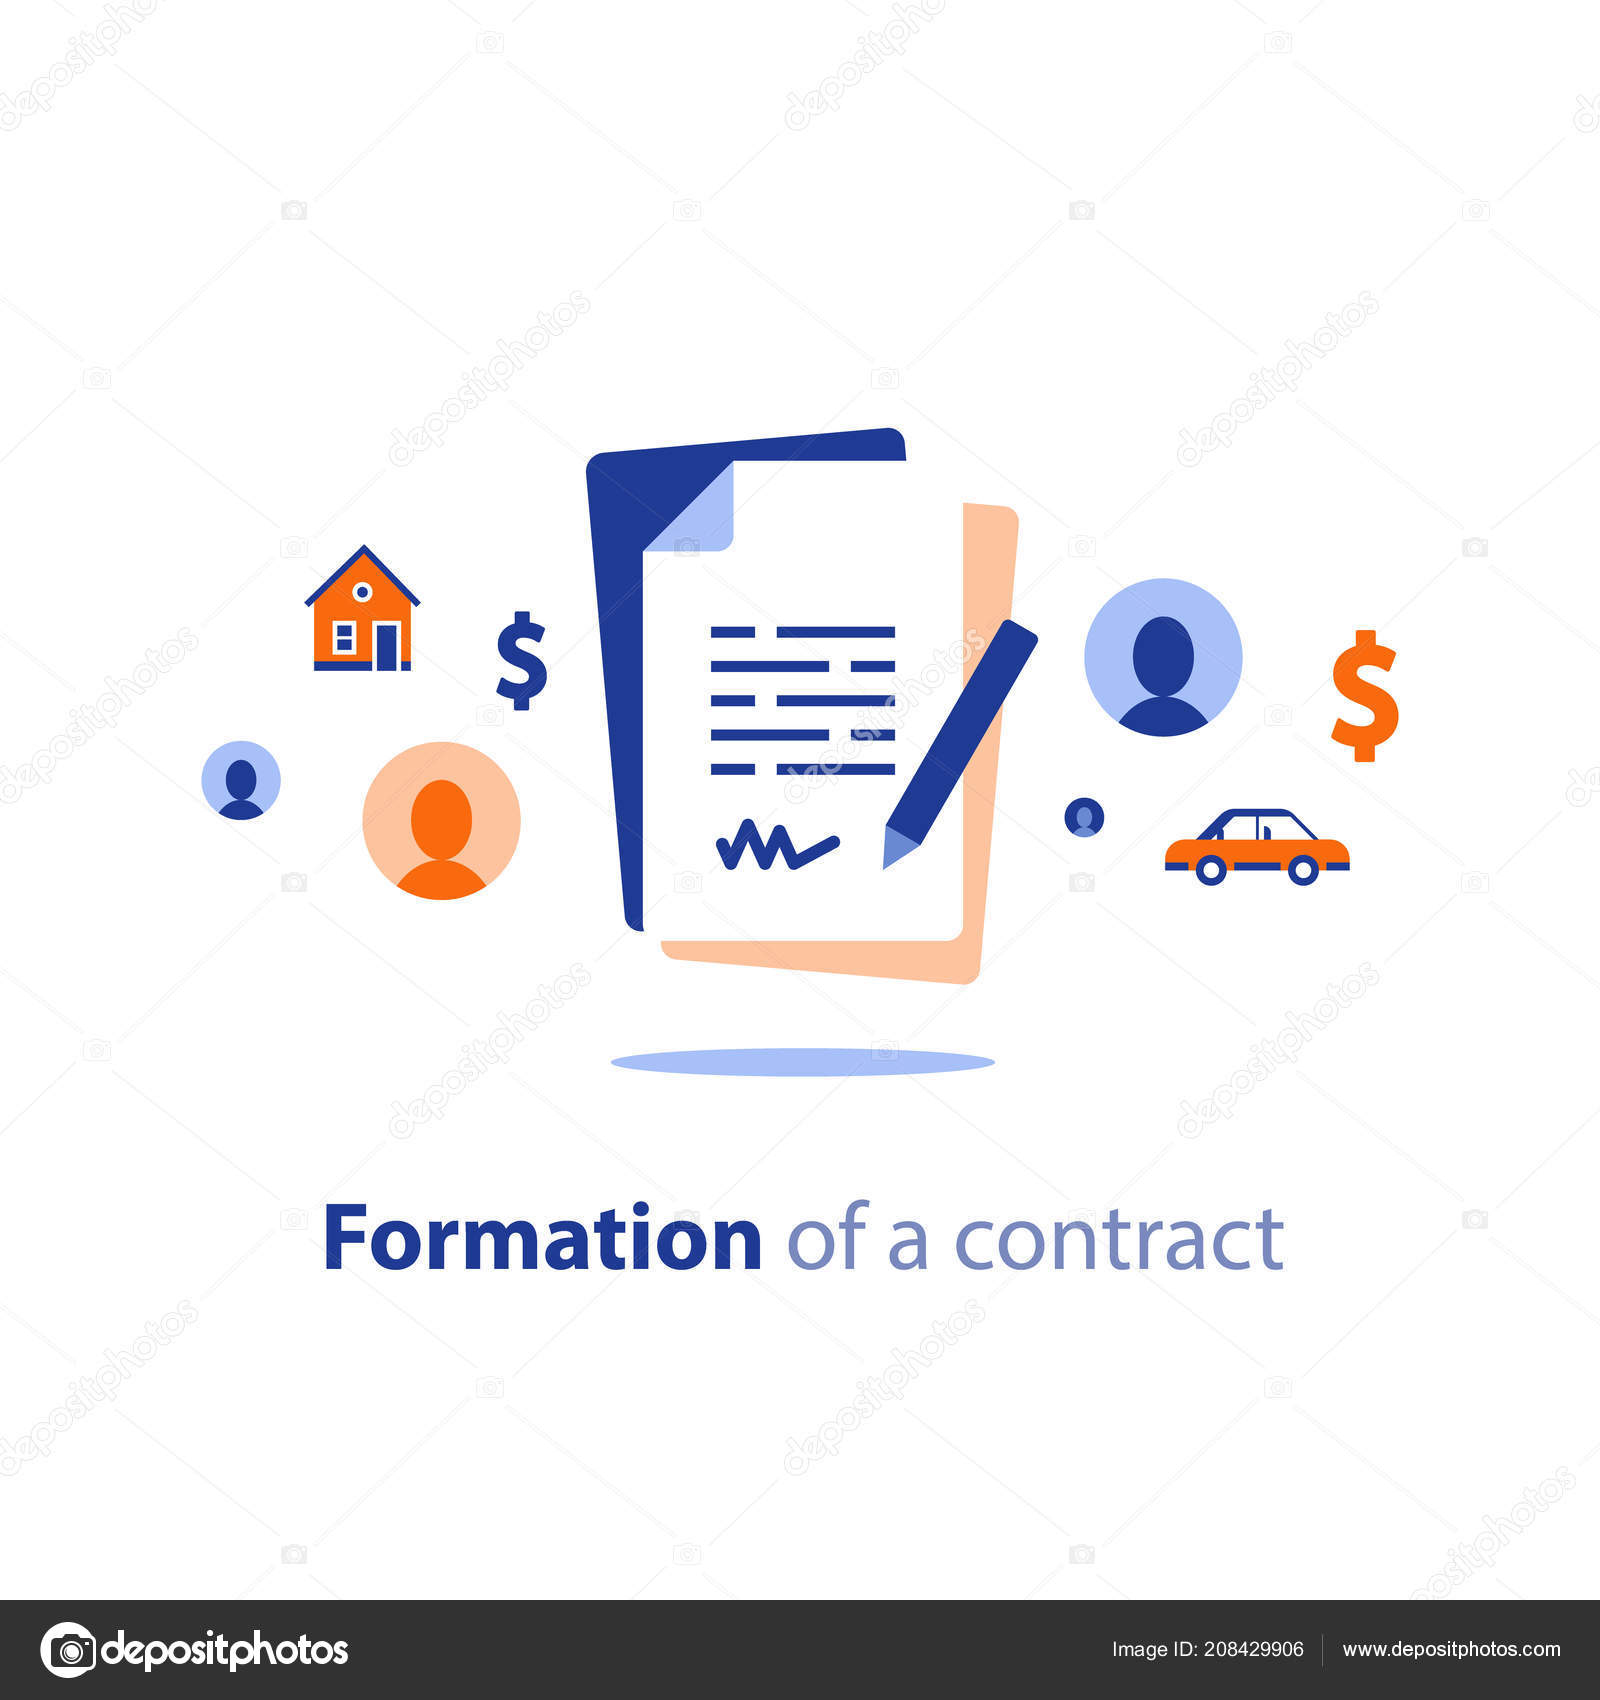 Application Form Composition Contract Creation Service Document